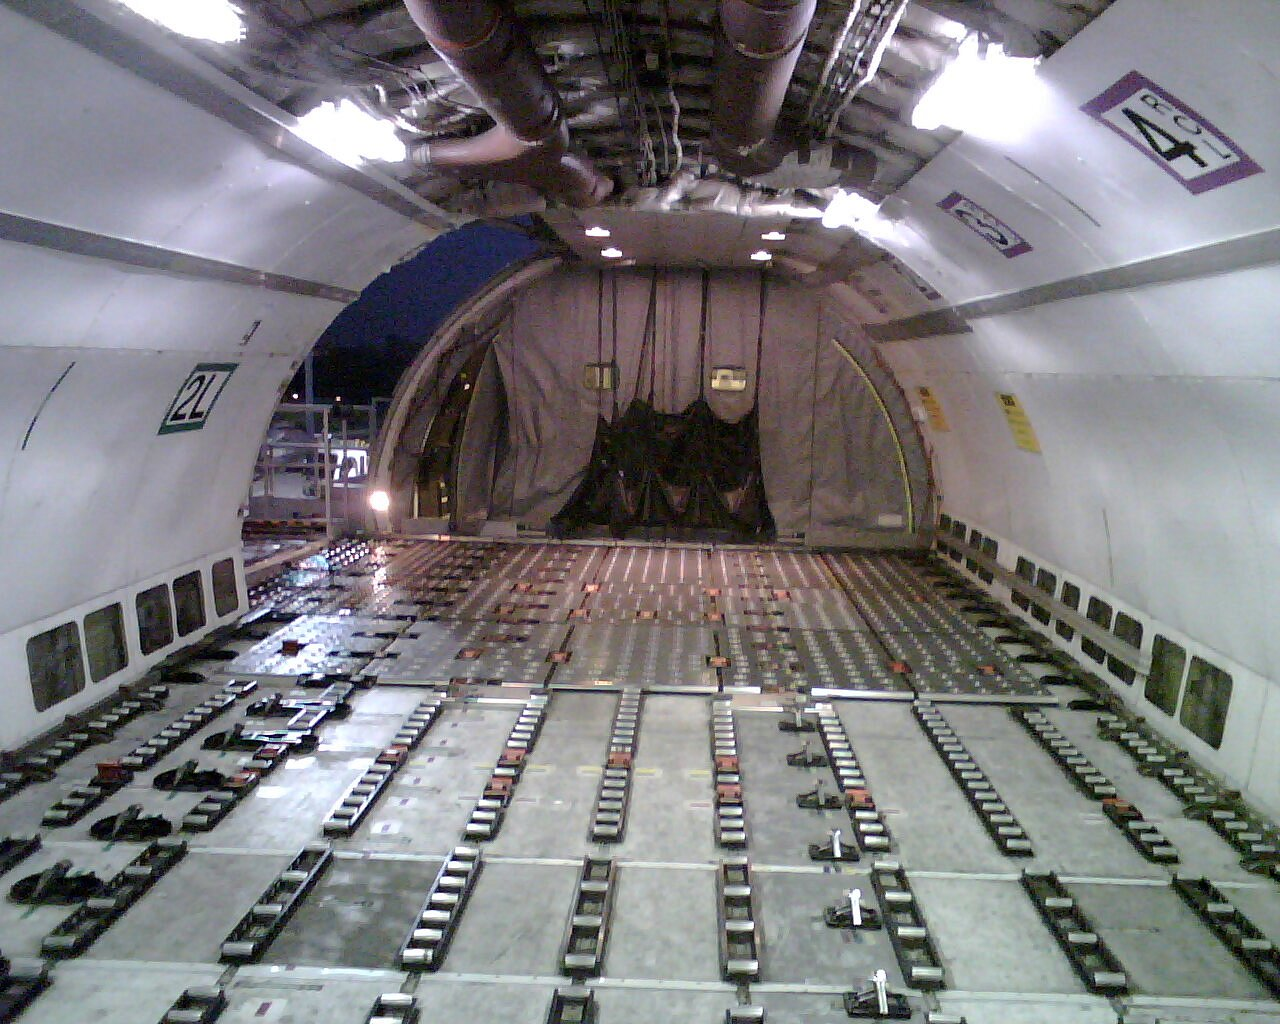 AIRBUS 1998 AIRBUS A300B4-622R CARGO CONFIGURATION FOR SALE